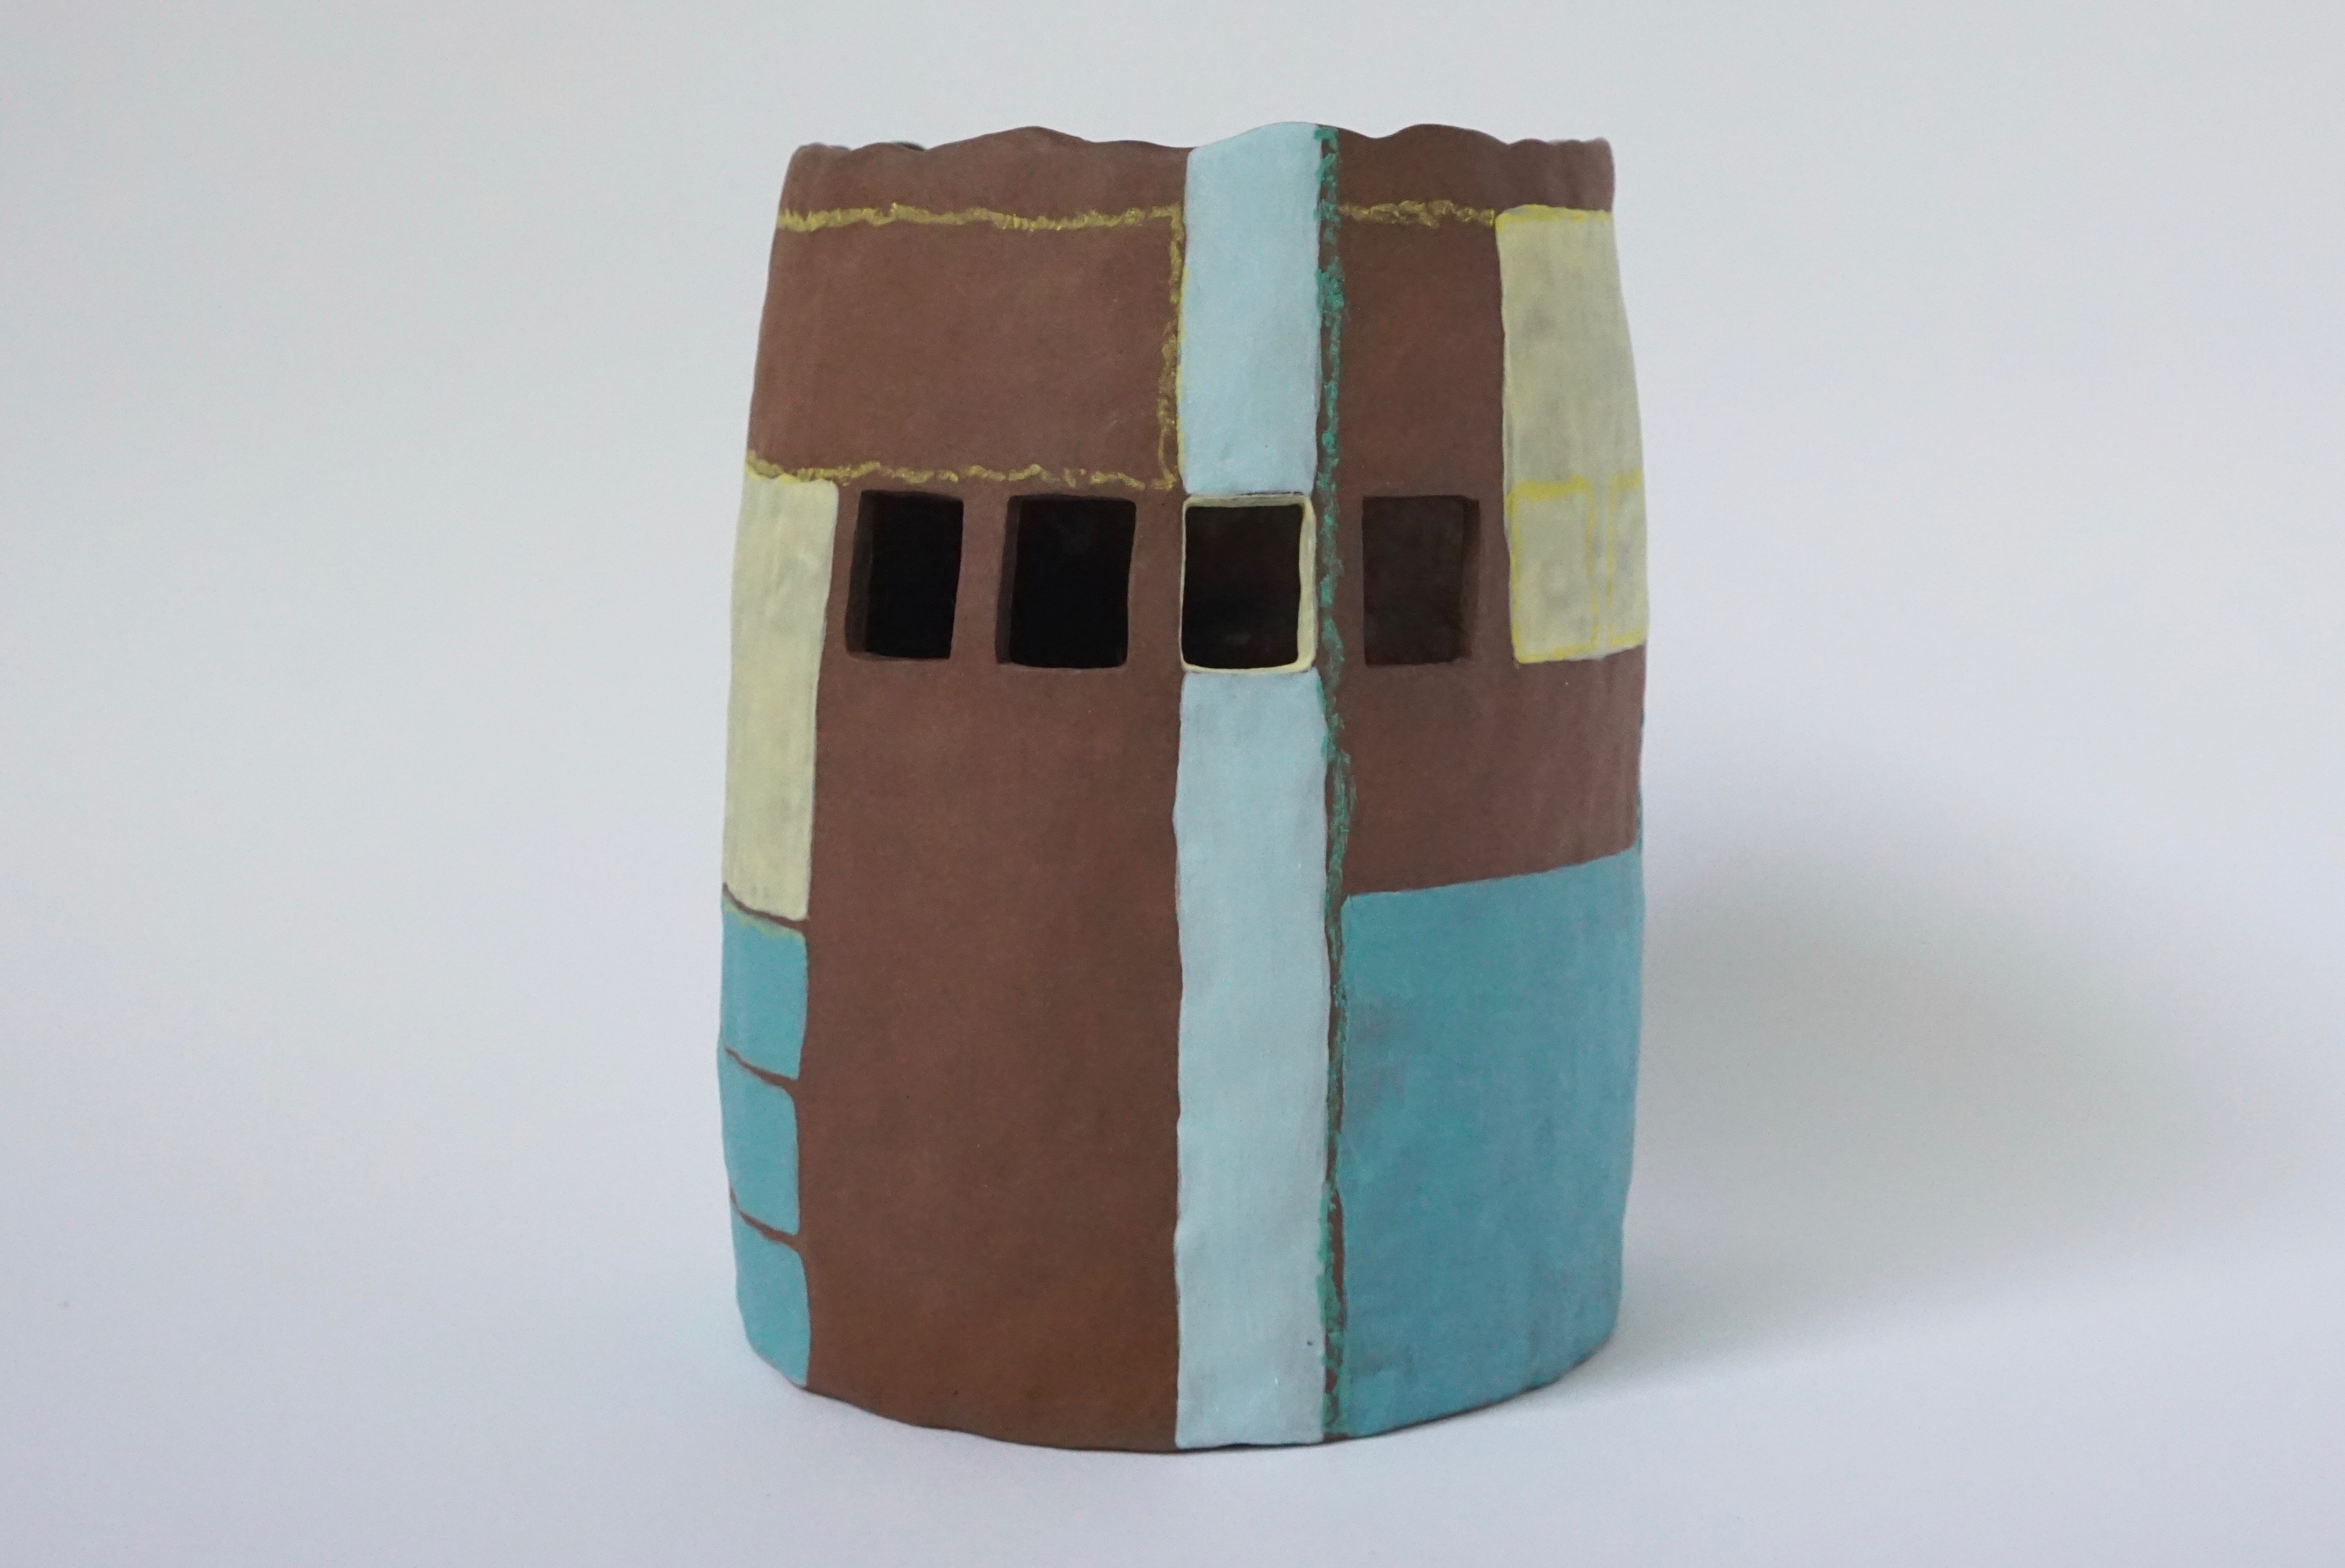 Photograph of ceramic work by Holly Macdonald